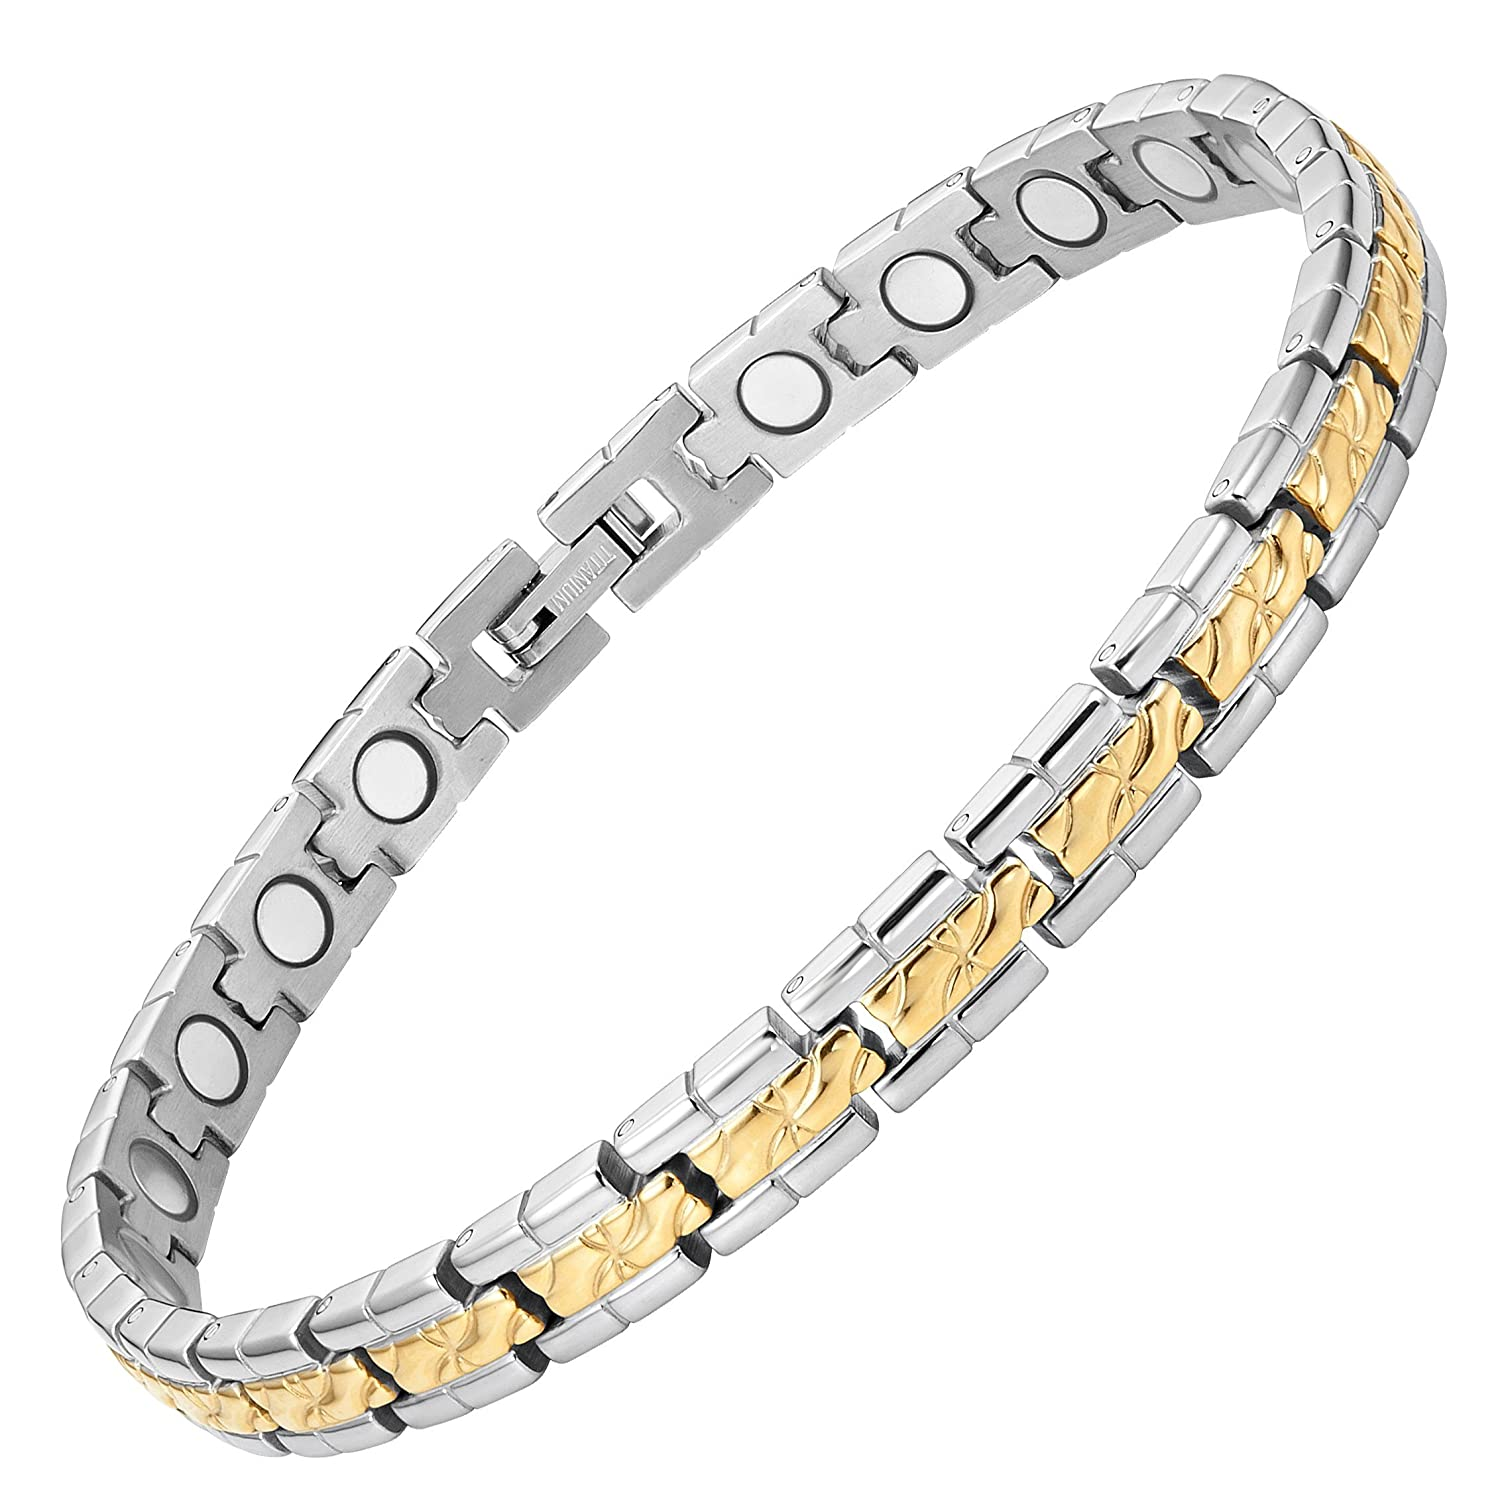 Amazon Womens Titanium Magic Therapy Bracelet For Arthritis Pain Relief Size Adjusting Tool And Gift Box Included By Willis Judd Clothing: Thin Wedding Bands For Women Arthritis At Websimilar.org